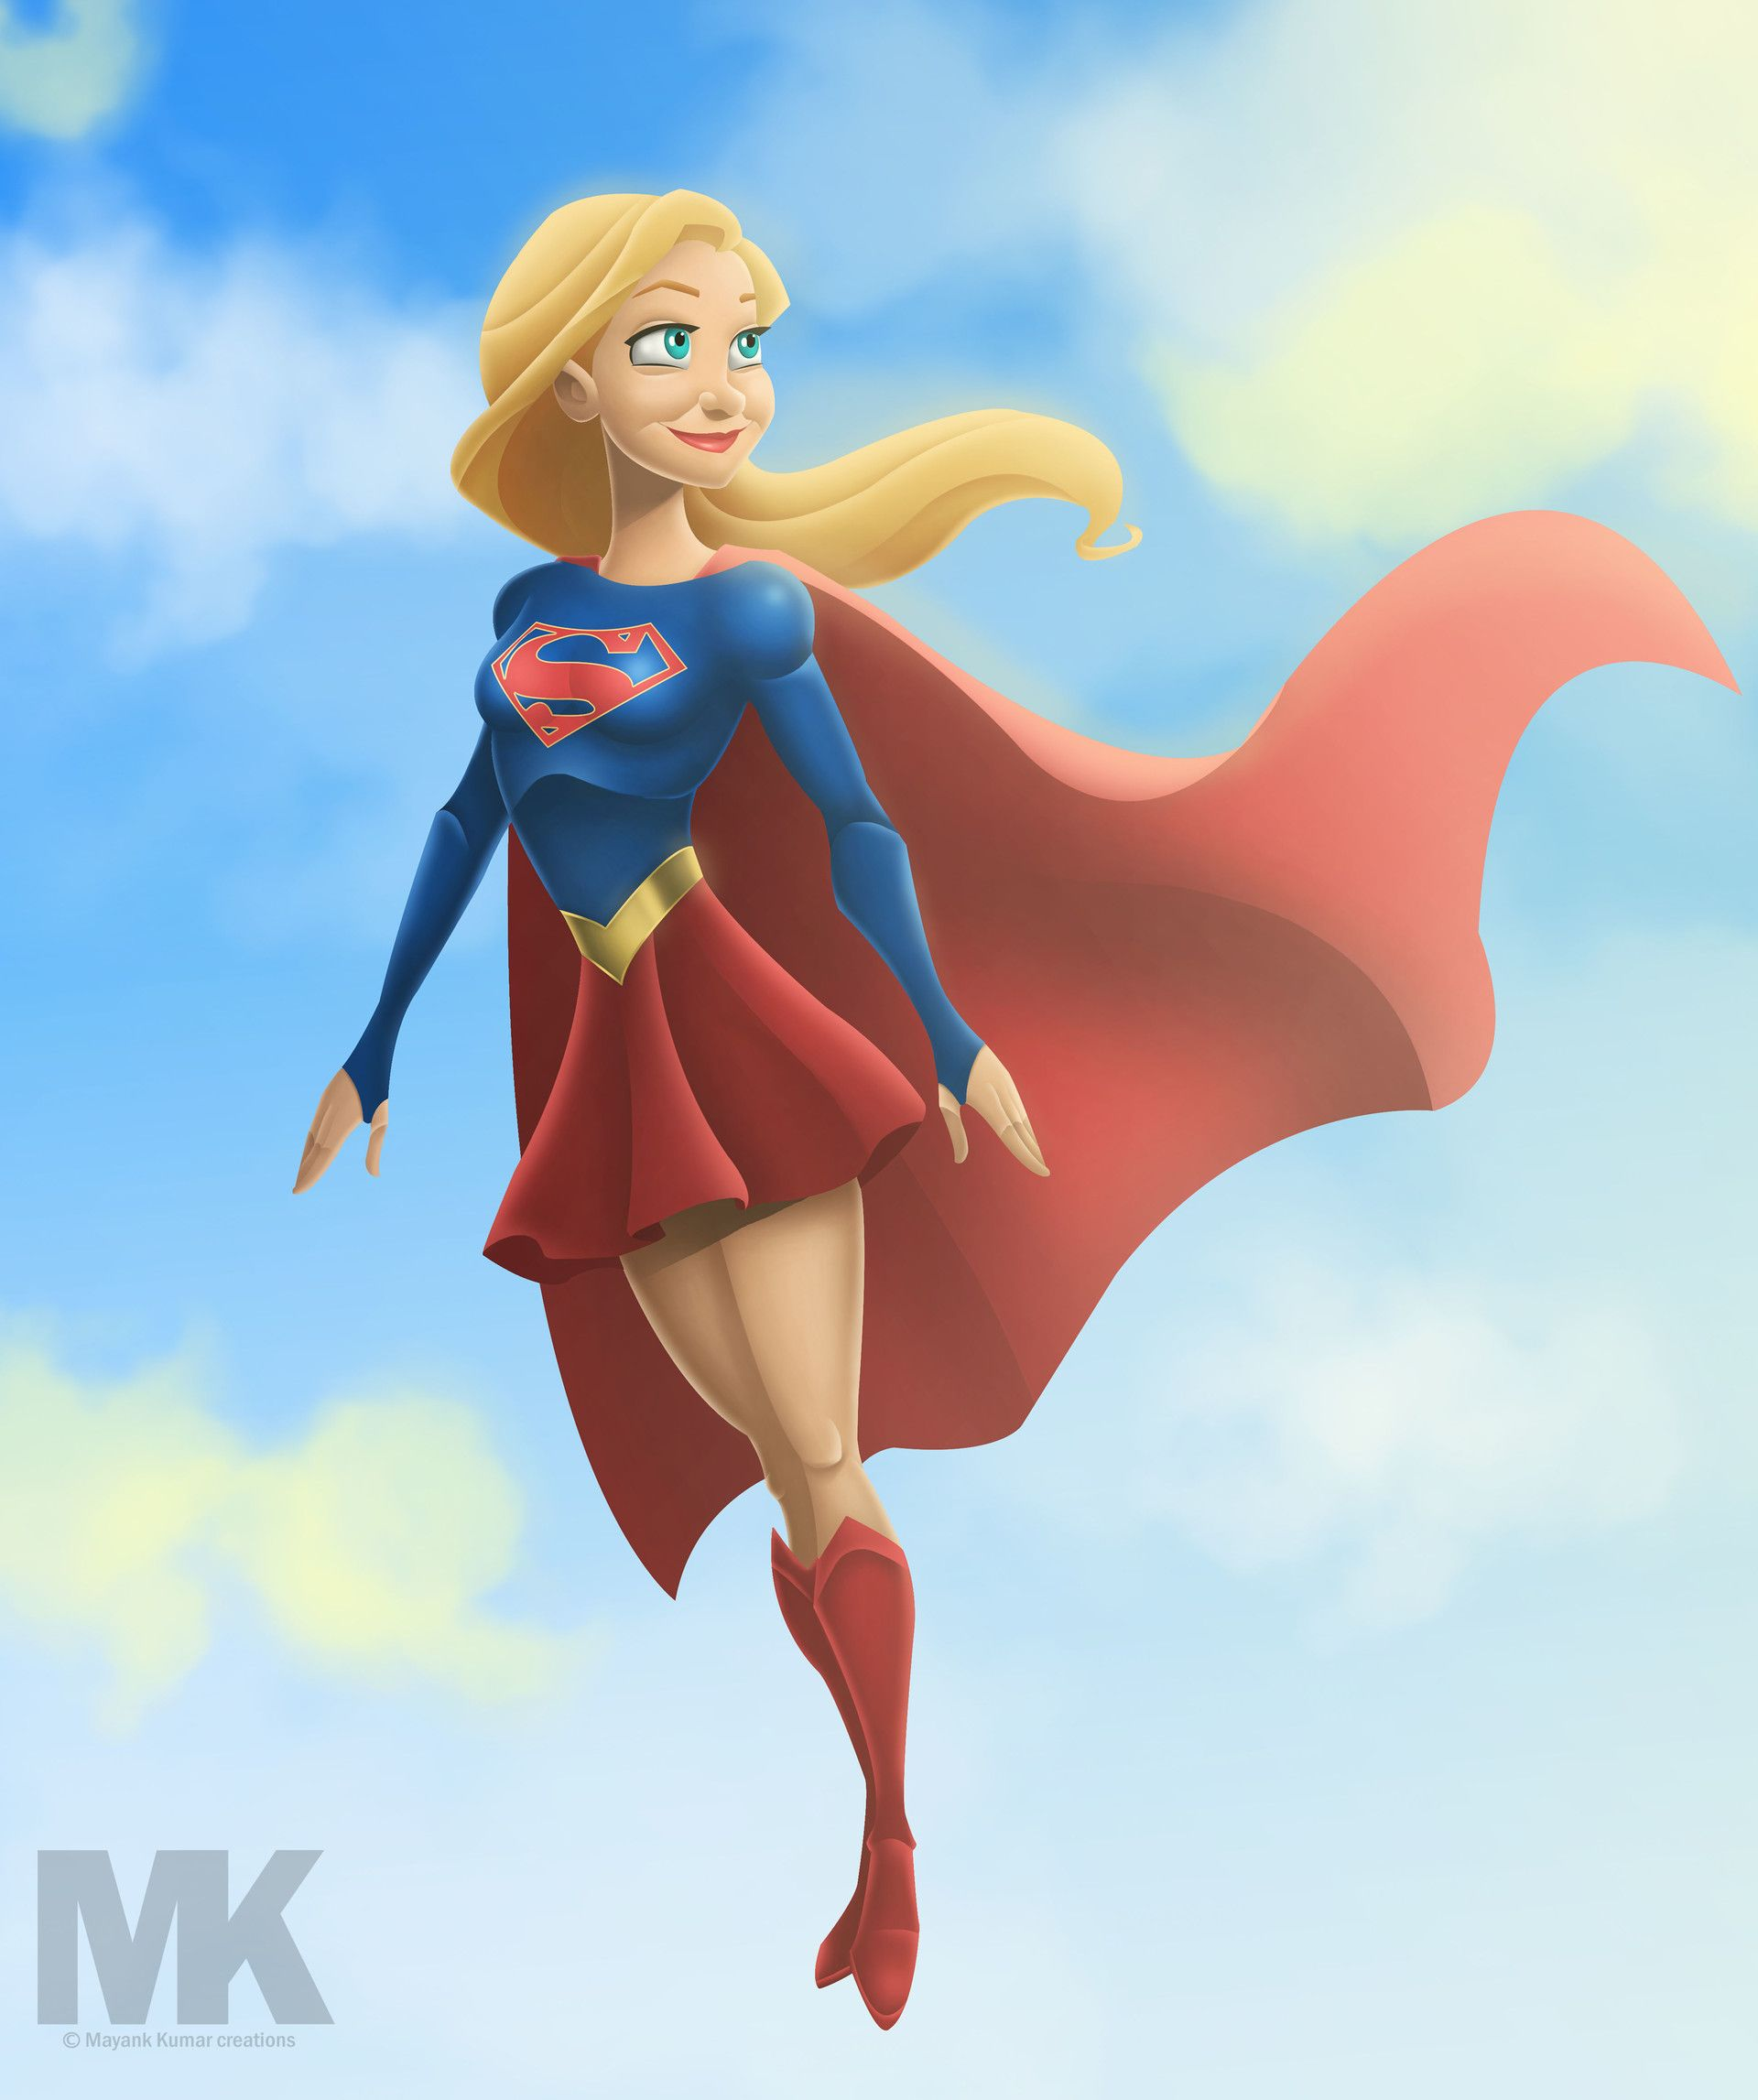 supergirl-animated-barely-legal-glory-hole-creampies-animated-gifs